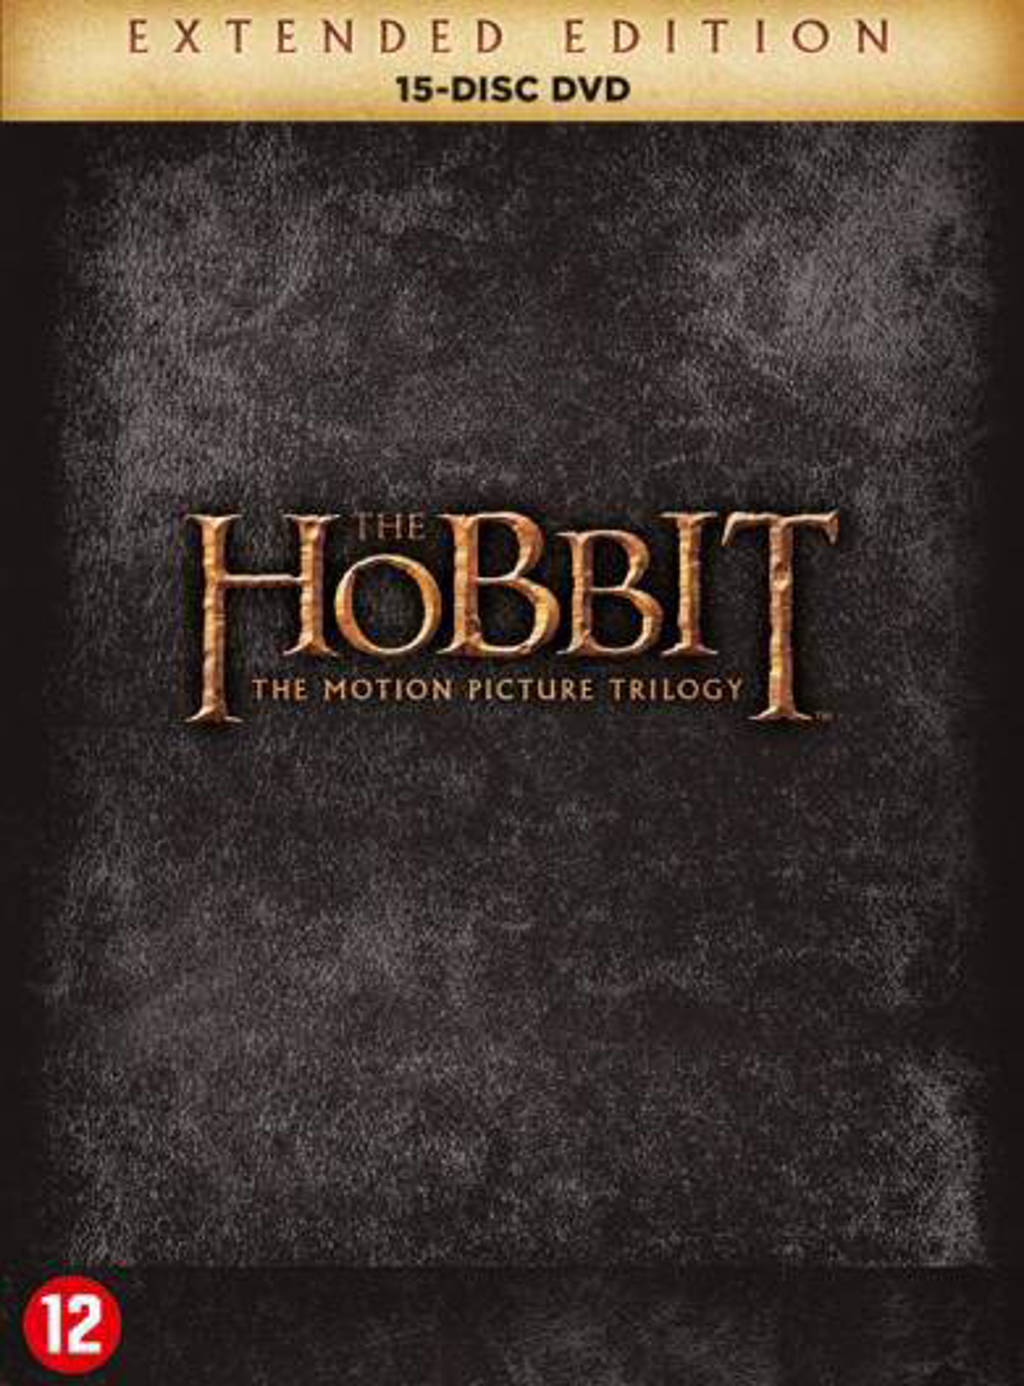 Hobbit trilogy extended edition (DVD)